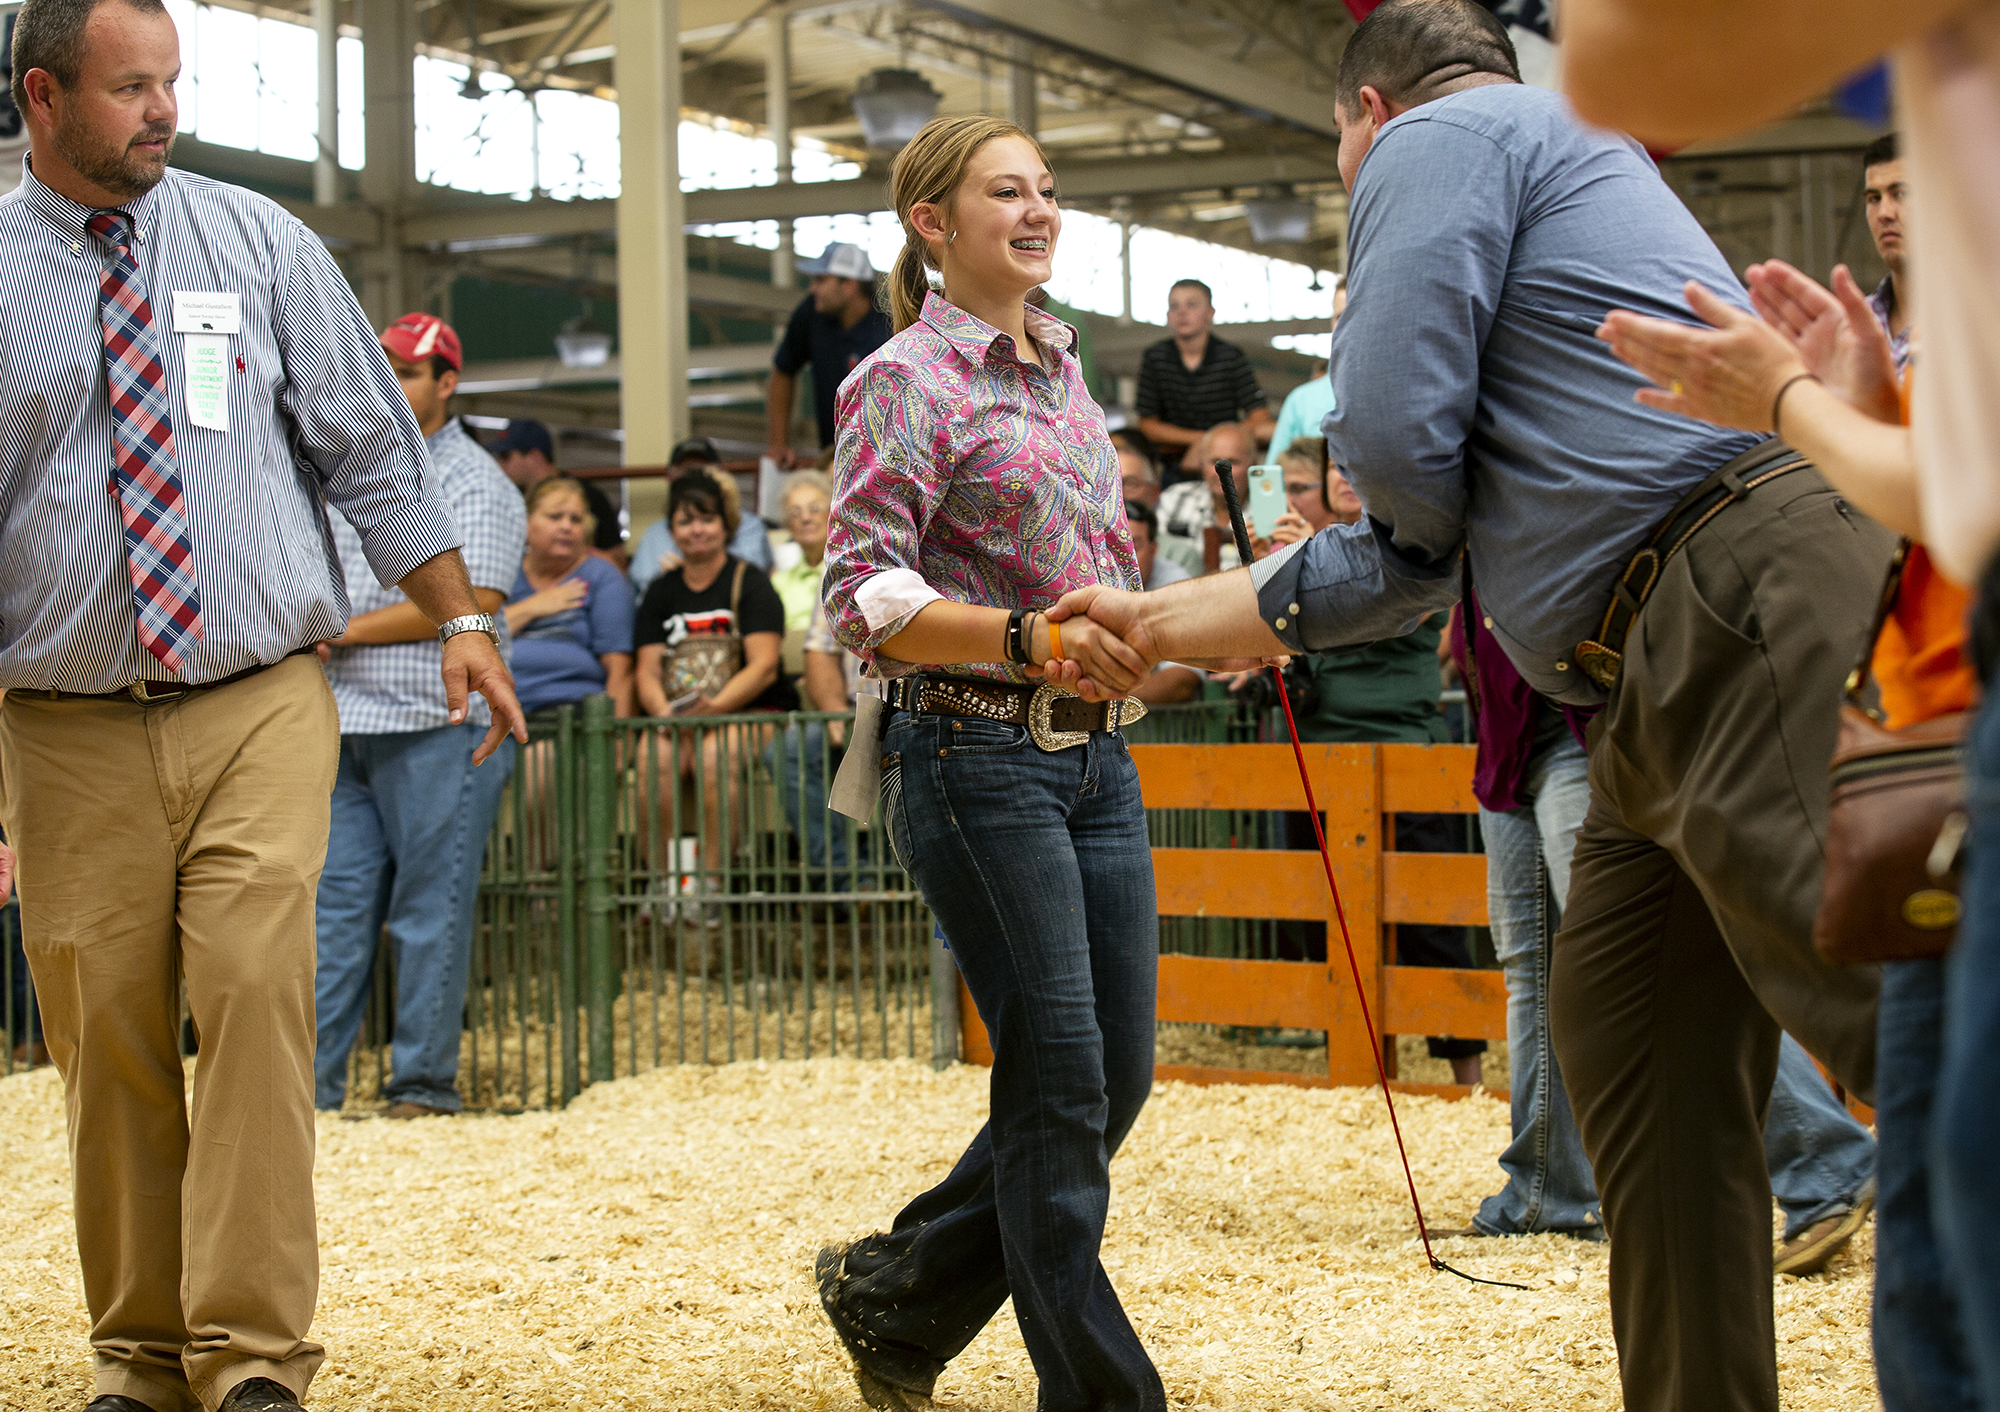 After selecting her Hampshire barrow the breed champion, the judges, Michael Gustafson, left, and John Staude congratulate Brooke Beyers of Sibley in the Land of Lincoln Junior Barrow Show at the Illinois State Fair Saturday, Aug. 11, 2018 on the fairgrounds in Springfield, Ill. [Rich Saal/The State Journal-Register]